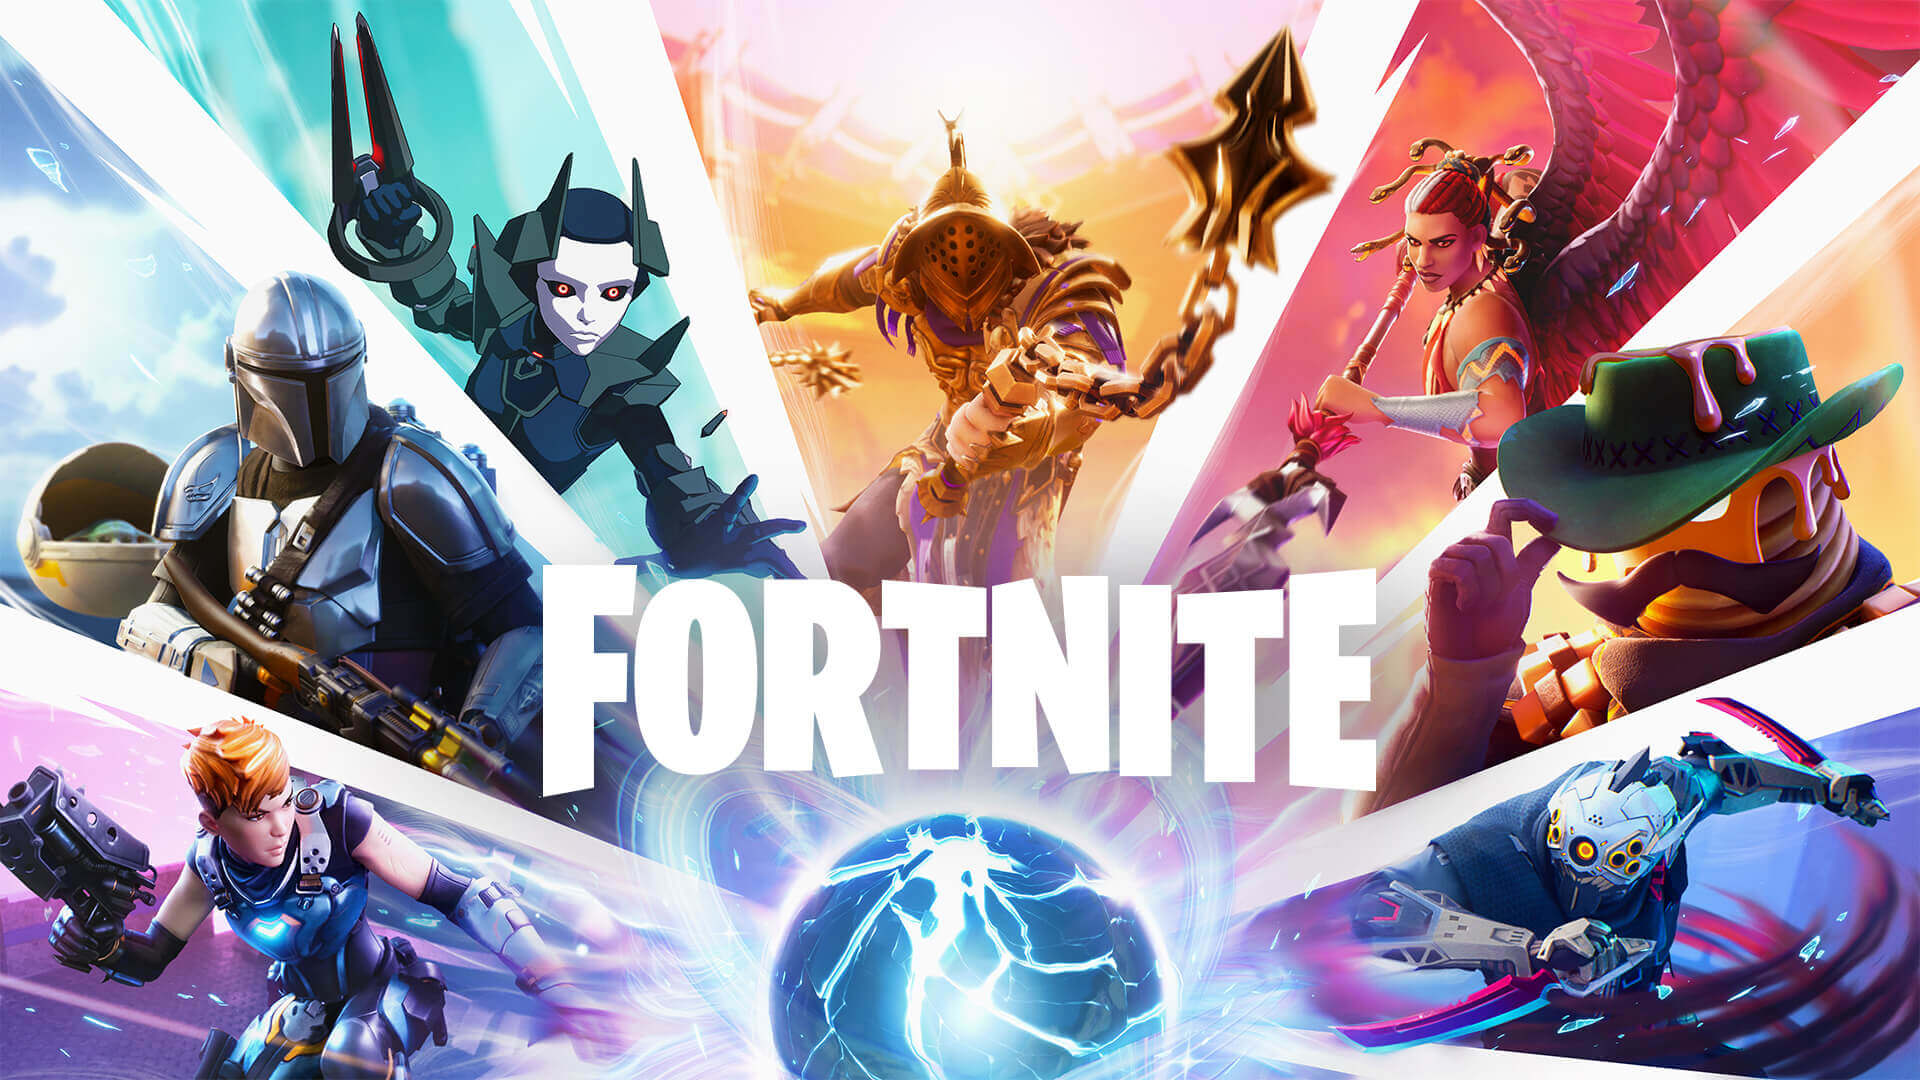 Fortnite Free To Play Cross Platform Game Fortnite Epic games and people can fly publishing: fortnite free to play cross platform